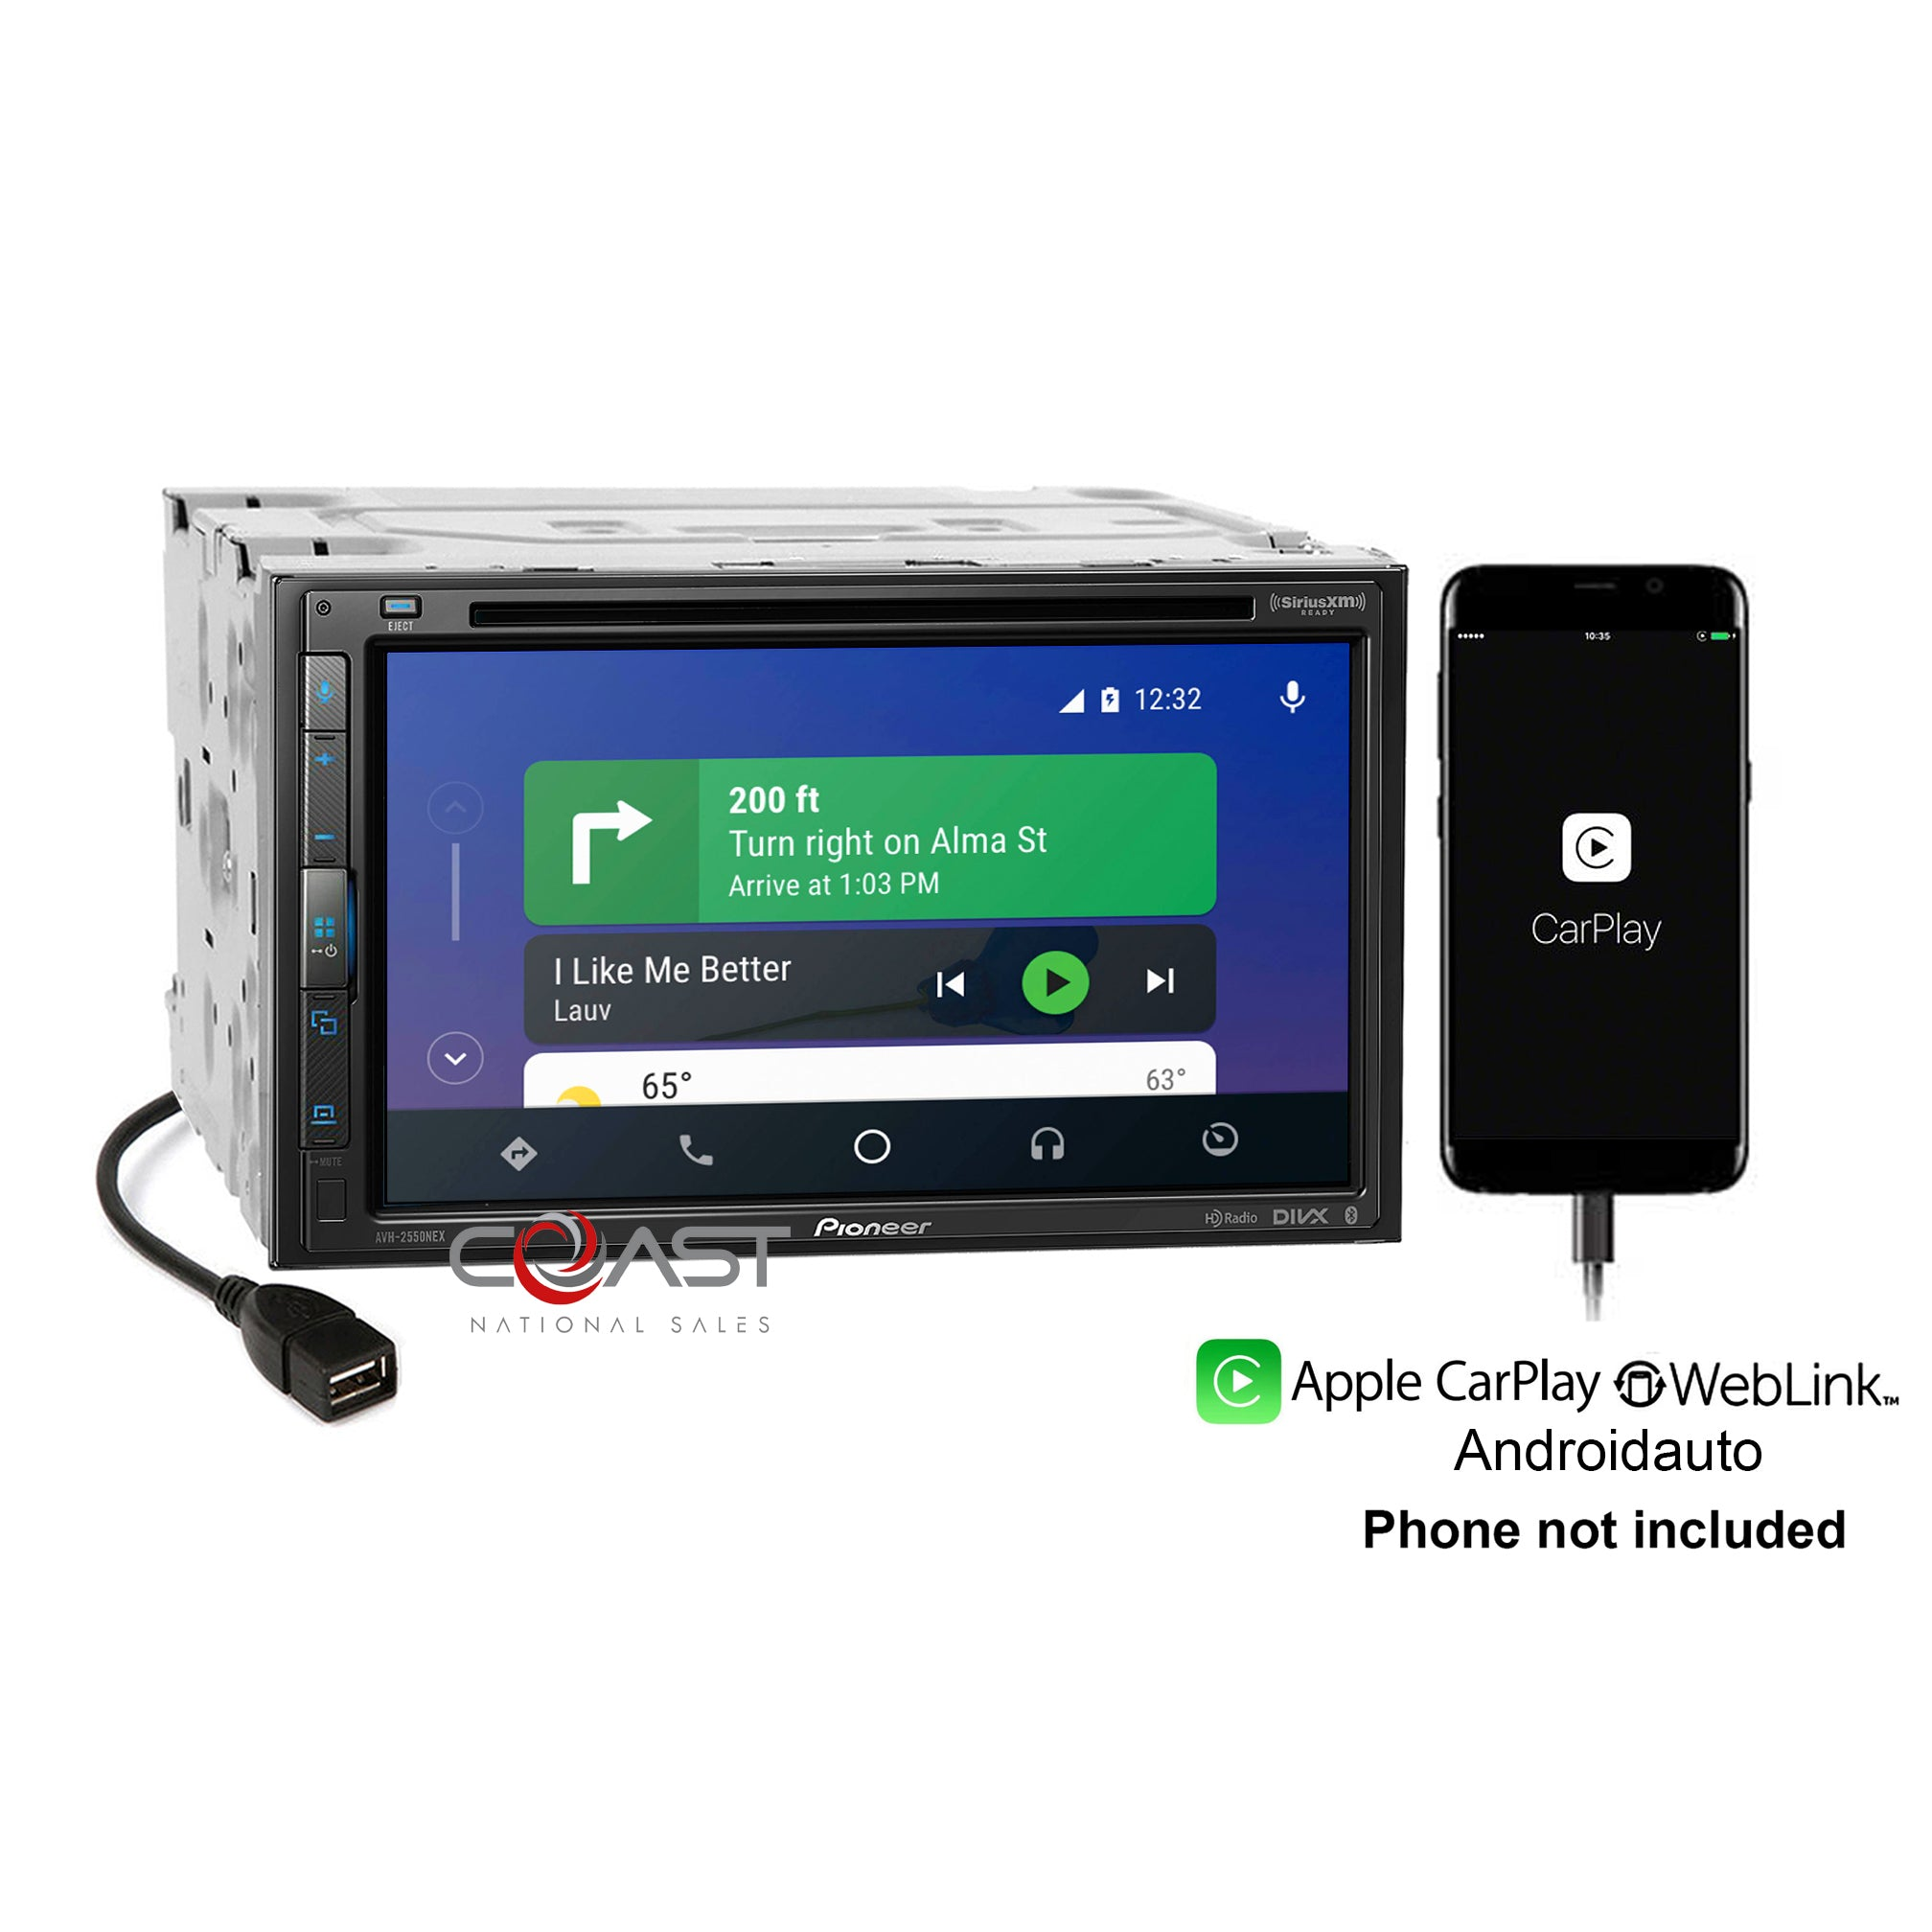 Pioneer DVD Waze Carplay Sirius Android Web Link Bluetooth